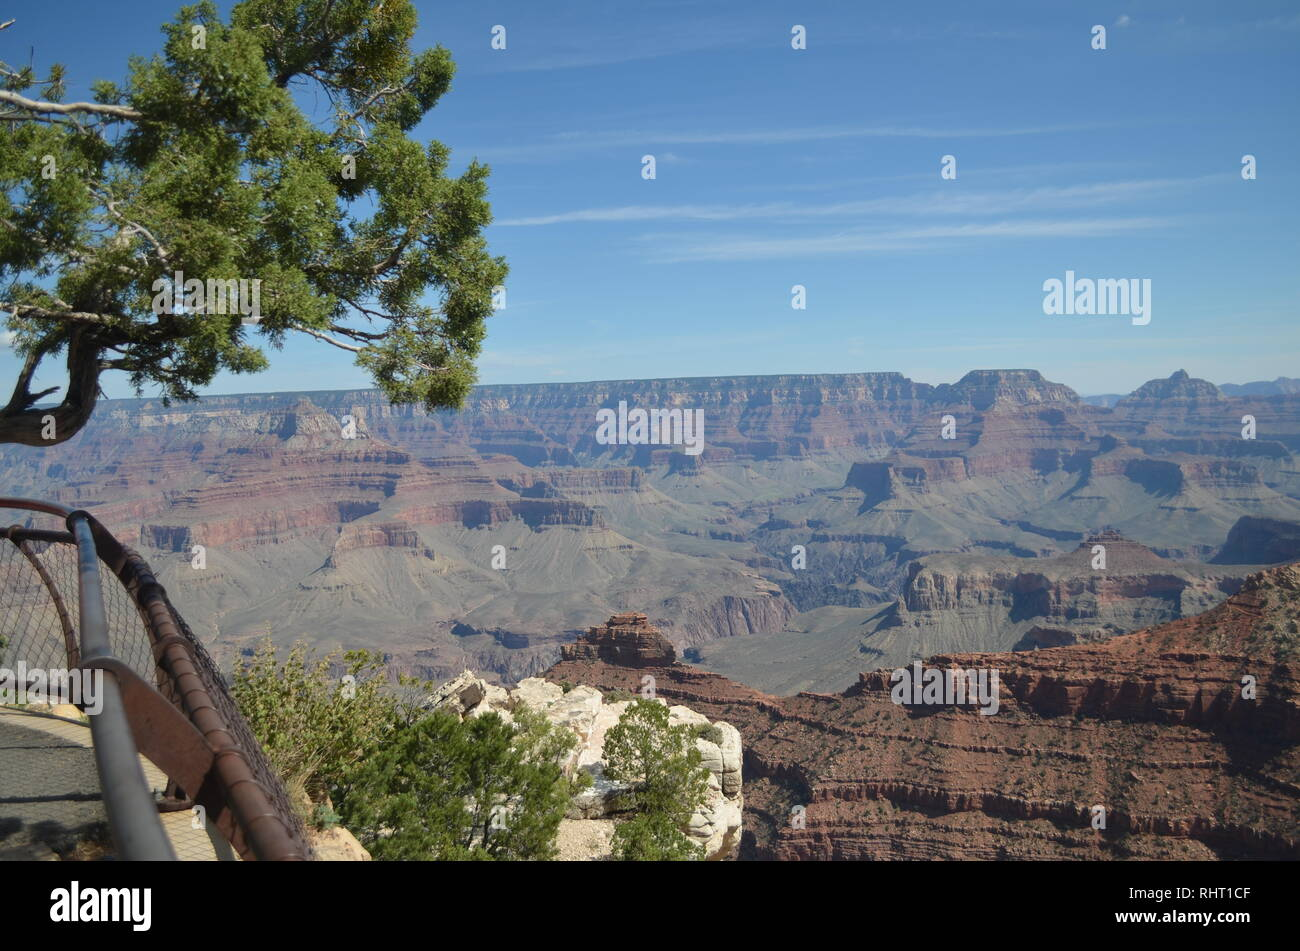 A tree bends over the Grand Canyon, Arizona, USA on a late afternoon in September - Stock Image